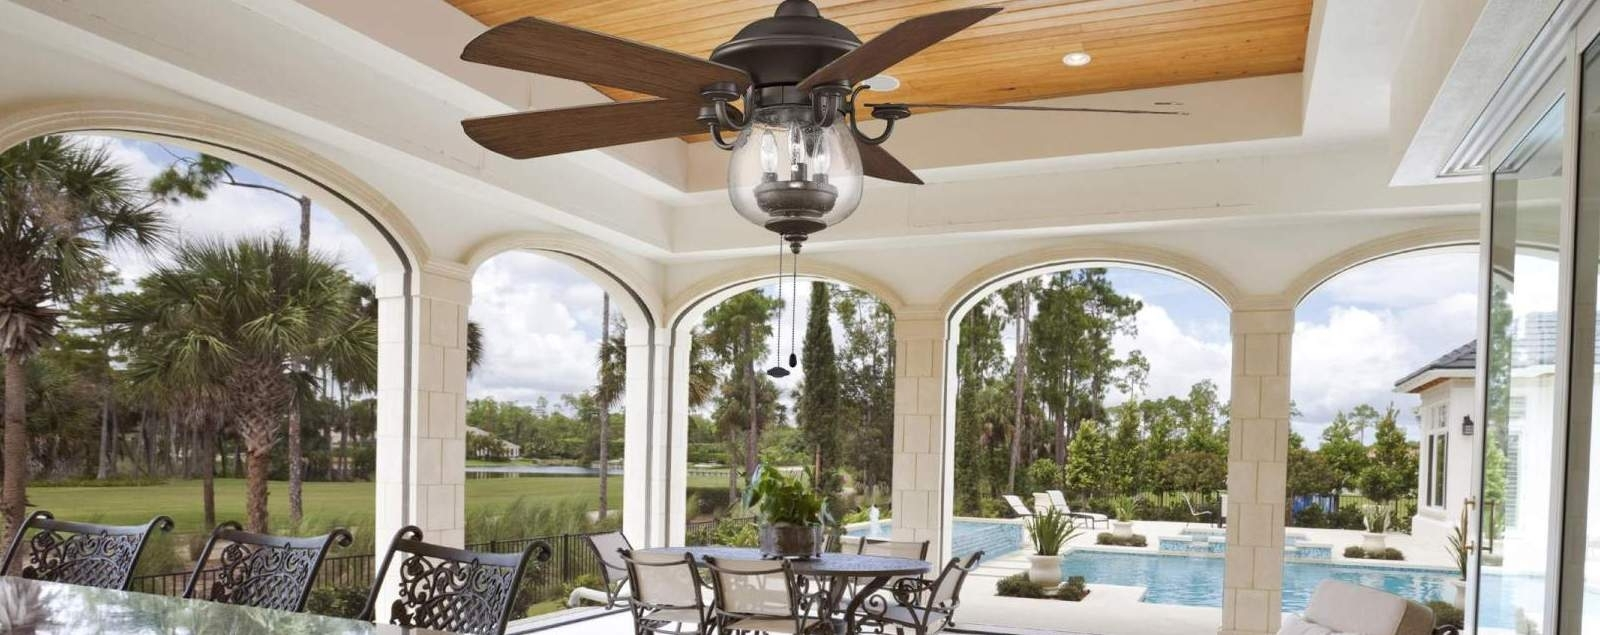 Outdoor Rated Ceiling Fans With Lights With Current Outdoor Ceiling Fans – Shop Wet, Dry, And Damp Rated Outdoor Fans (View 8 of 20)